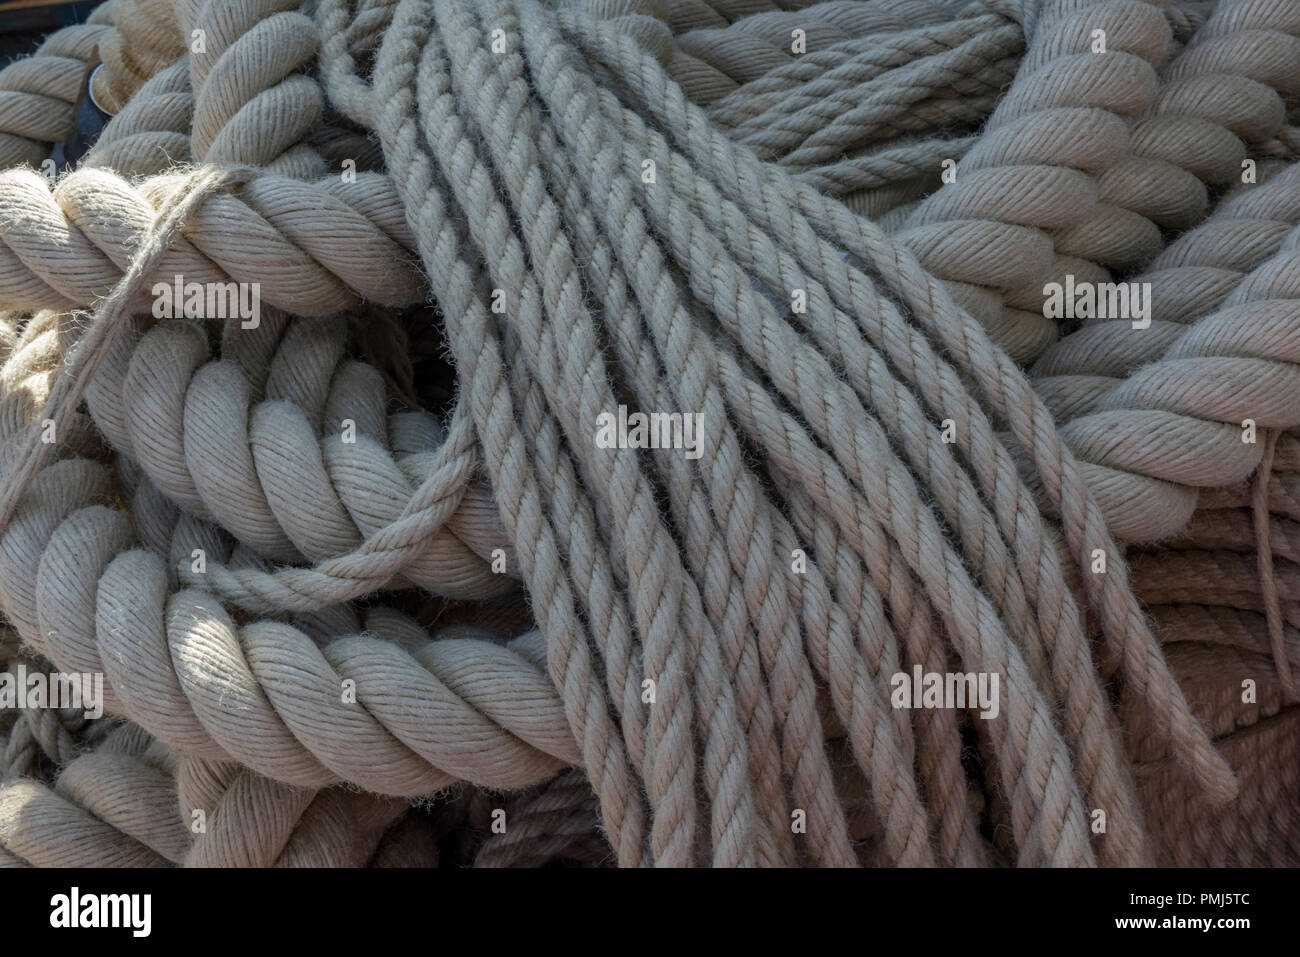 natural fibre cordage ropes in hemp, manila and sisal fibres knotted. - Stock Image